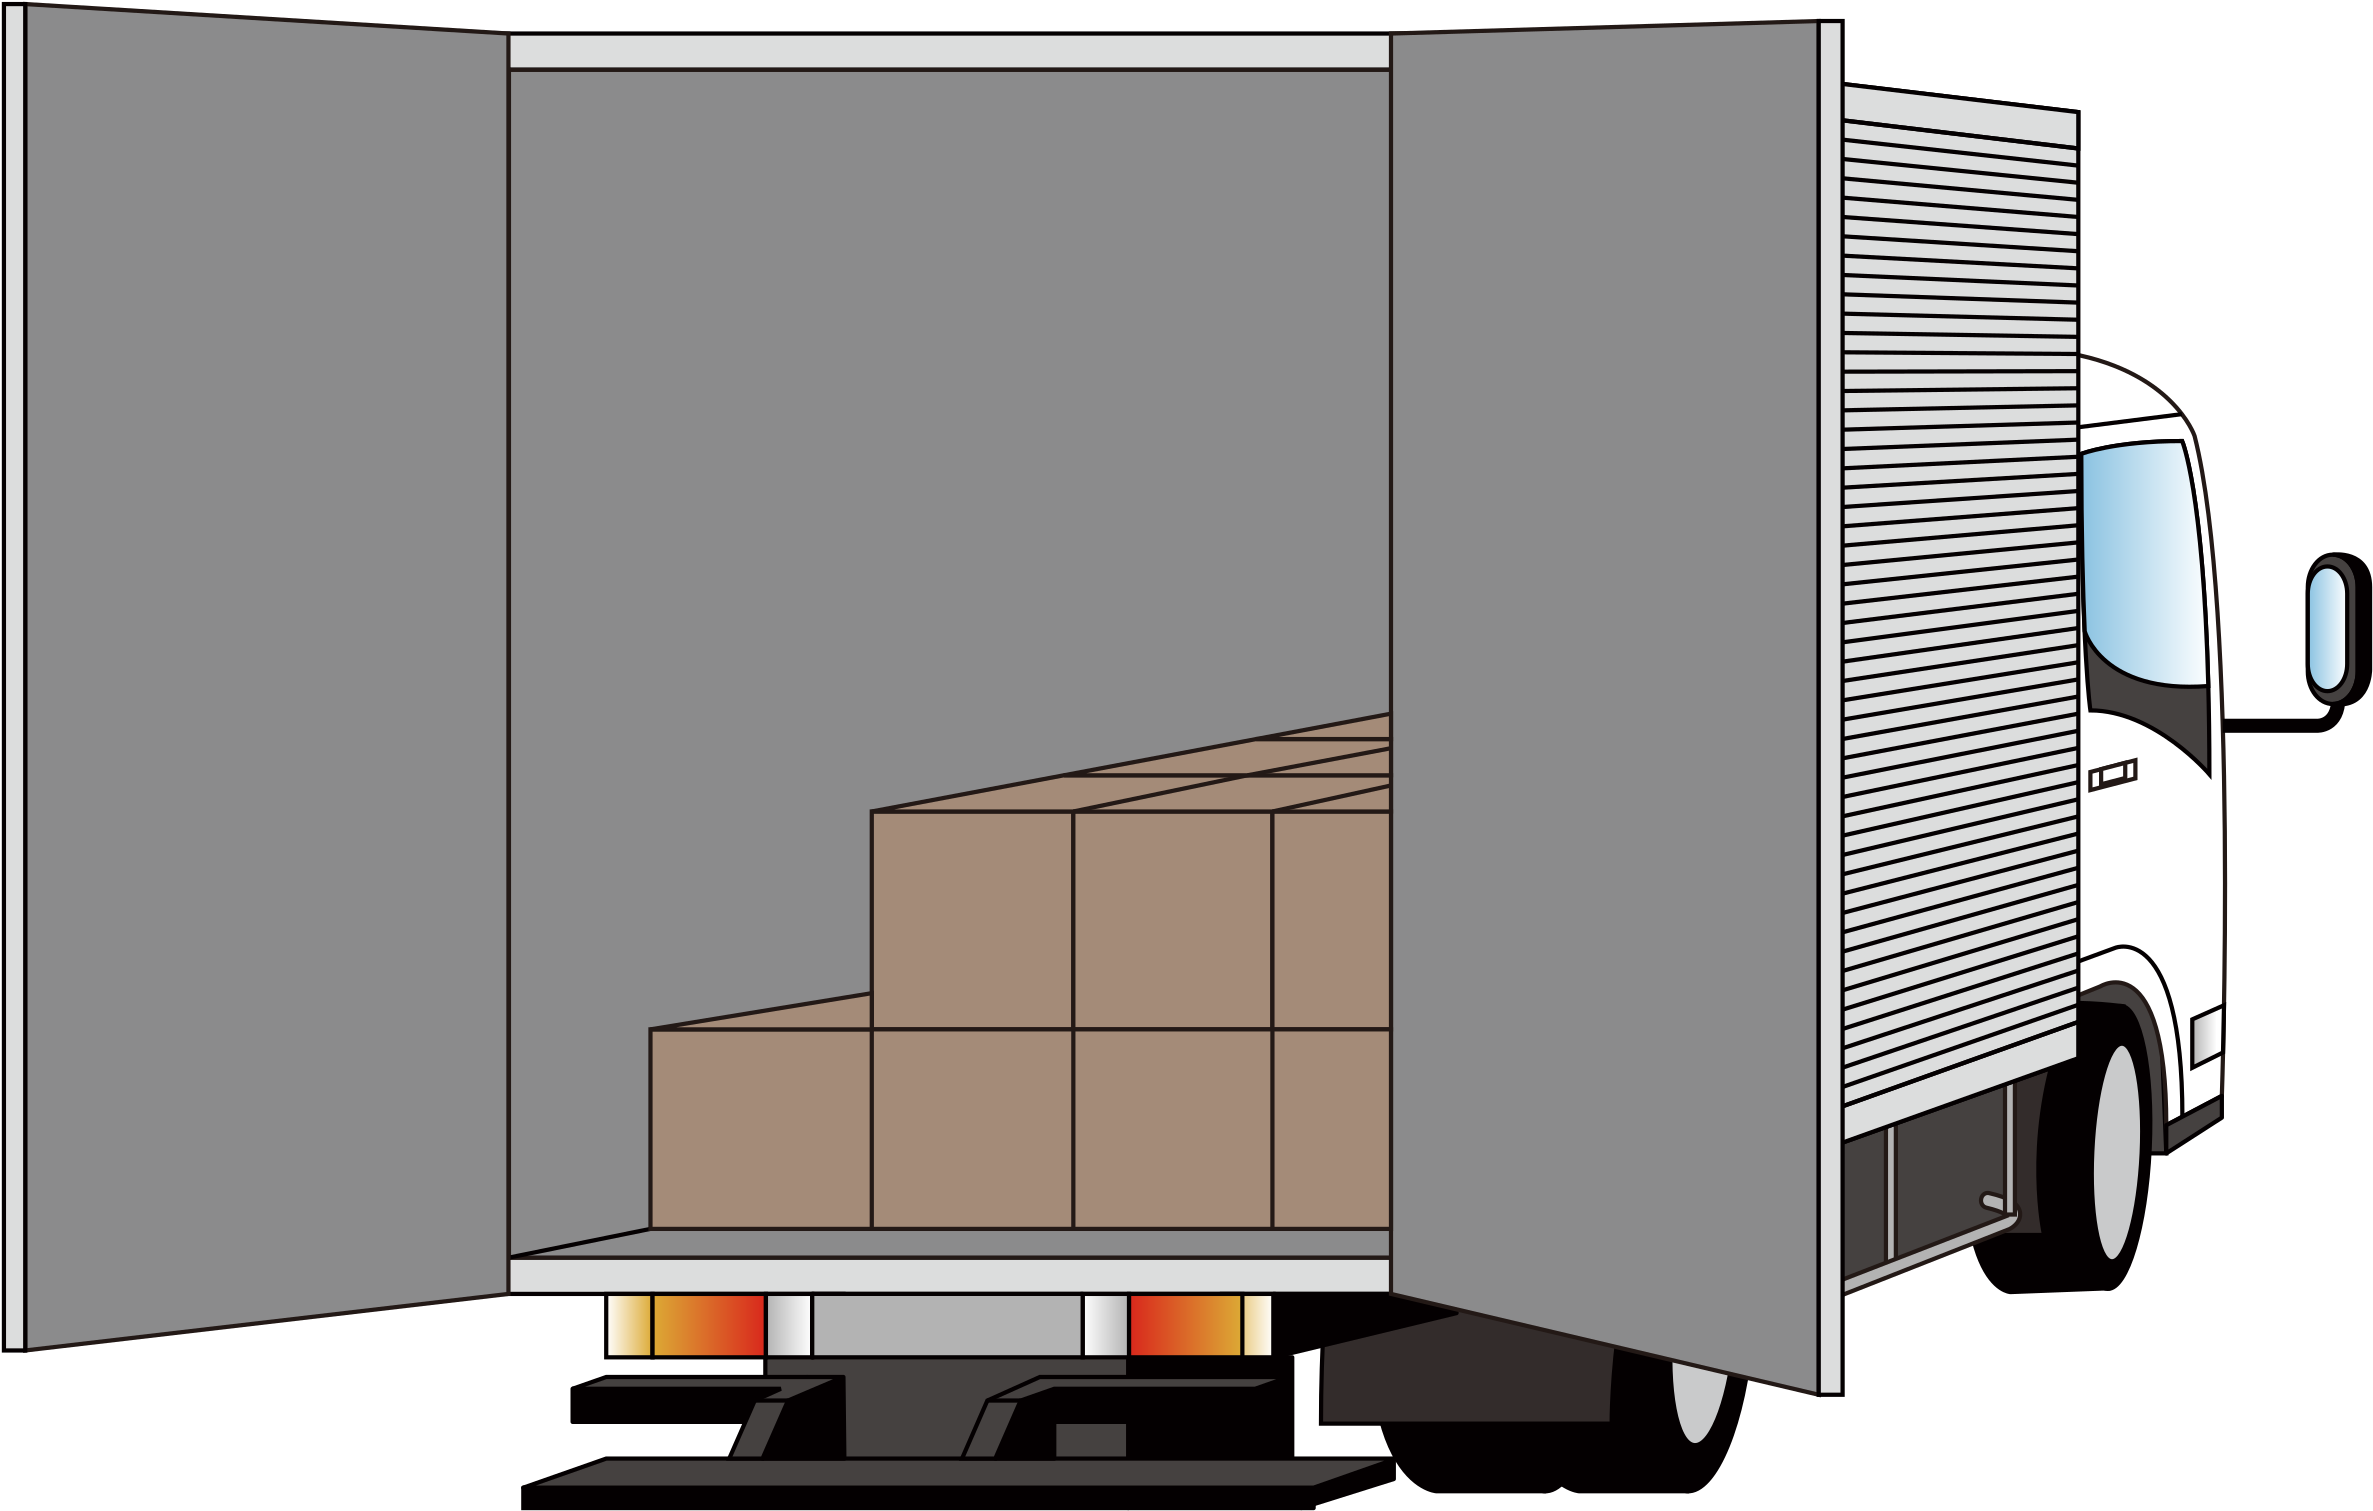 Transparent truck clipart - Keys Clipart Truck - Rear Of Delivery Truck